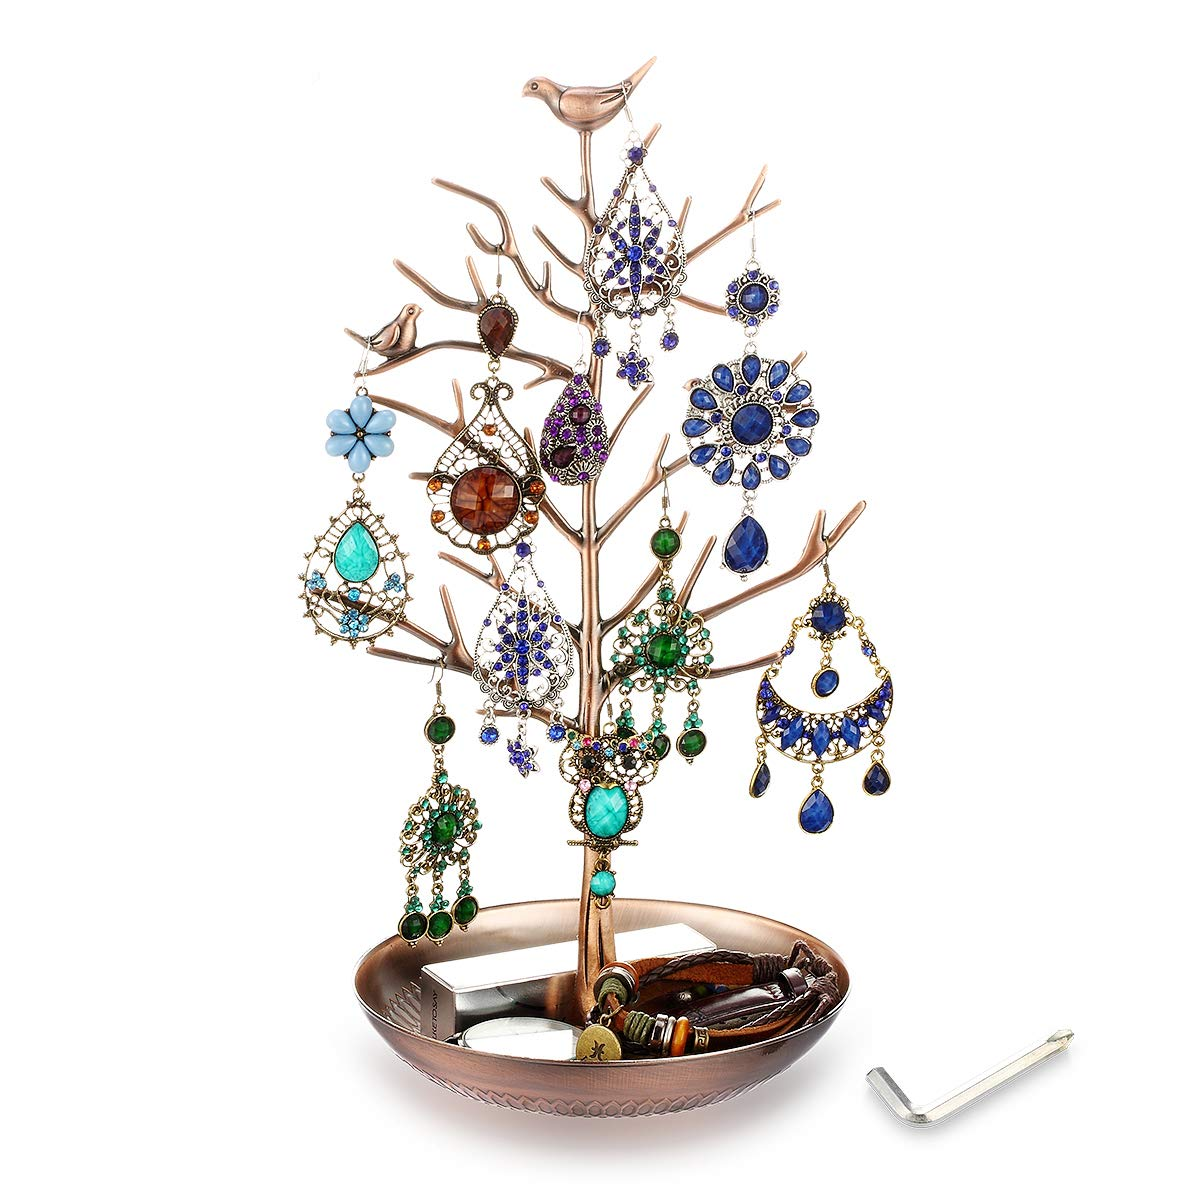 YODA Stronger Jewelry Earring Necklace Holder Stand Display Tree, Earring Necklace Organizer Rack Tower, Antique Brass